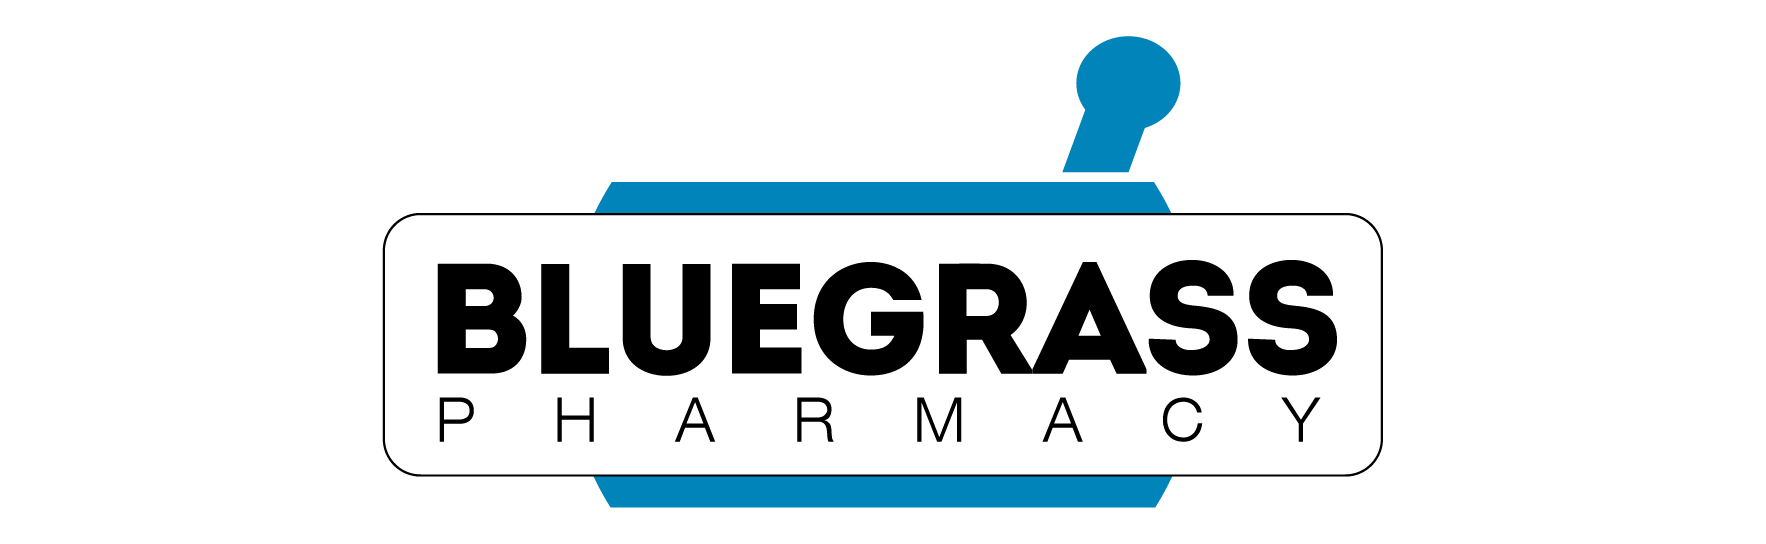 Bluegrass LTC Pharmacy